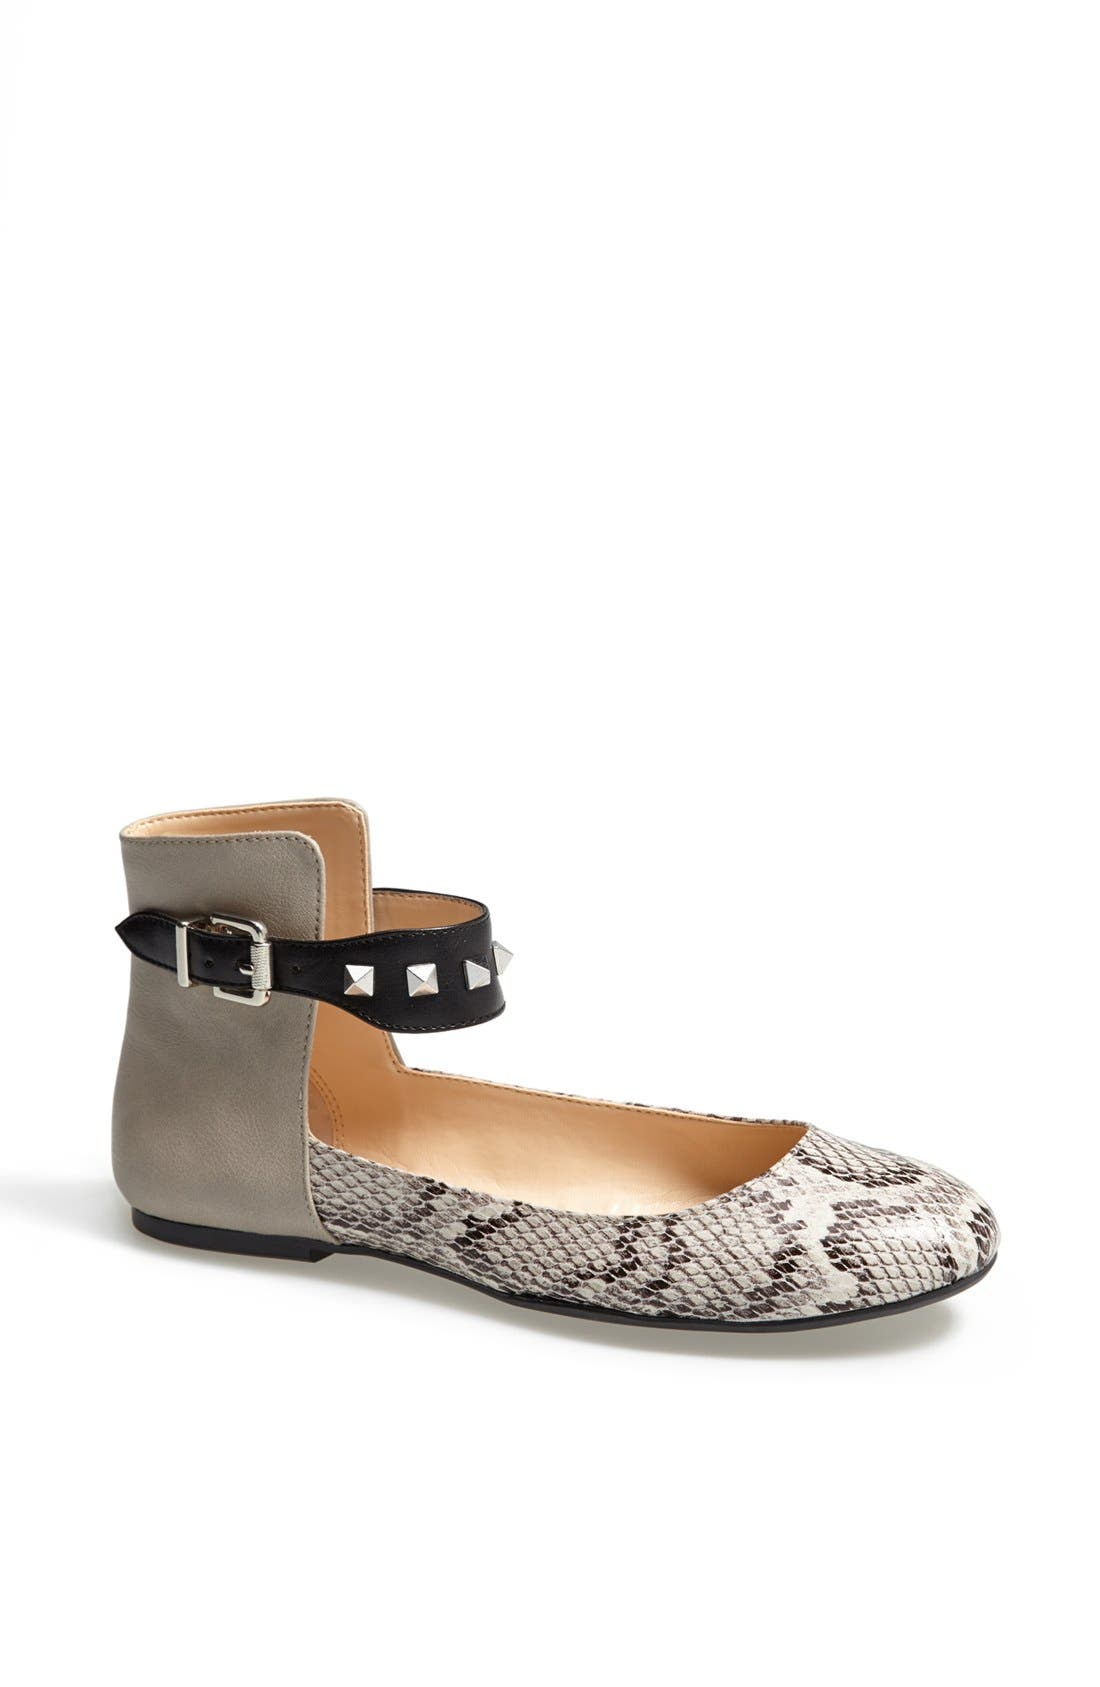 Alternate Image 1 Selected - Jessica Simpson 'Munney' Studded Ankle Strap Flat